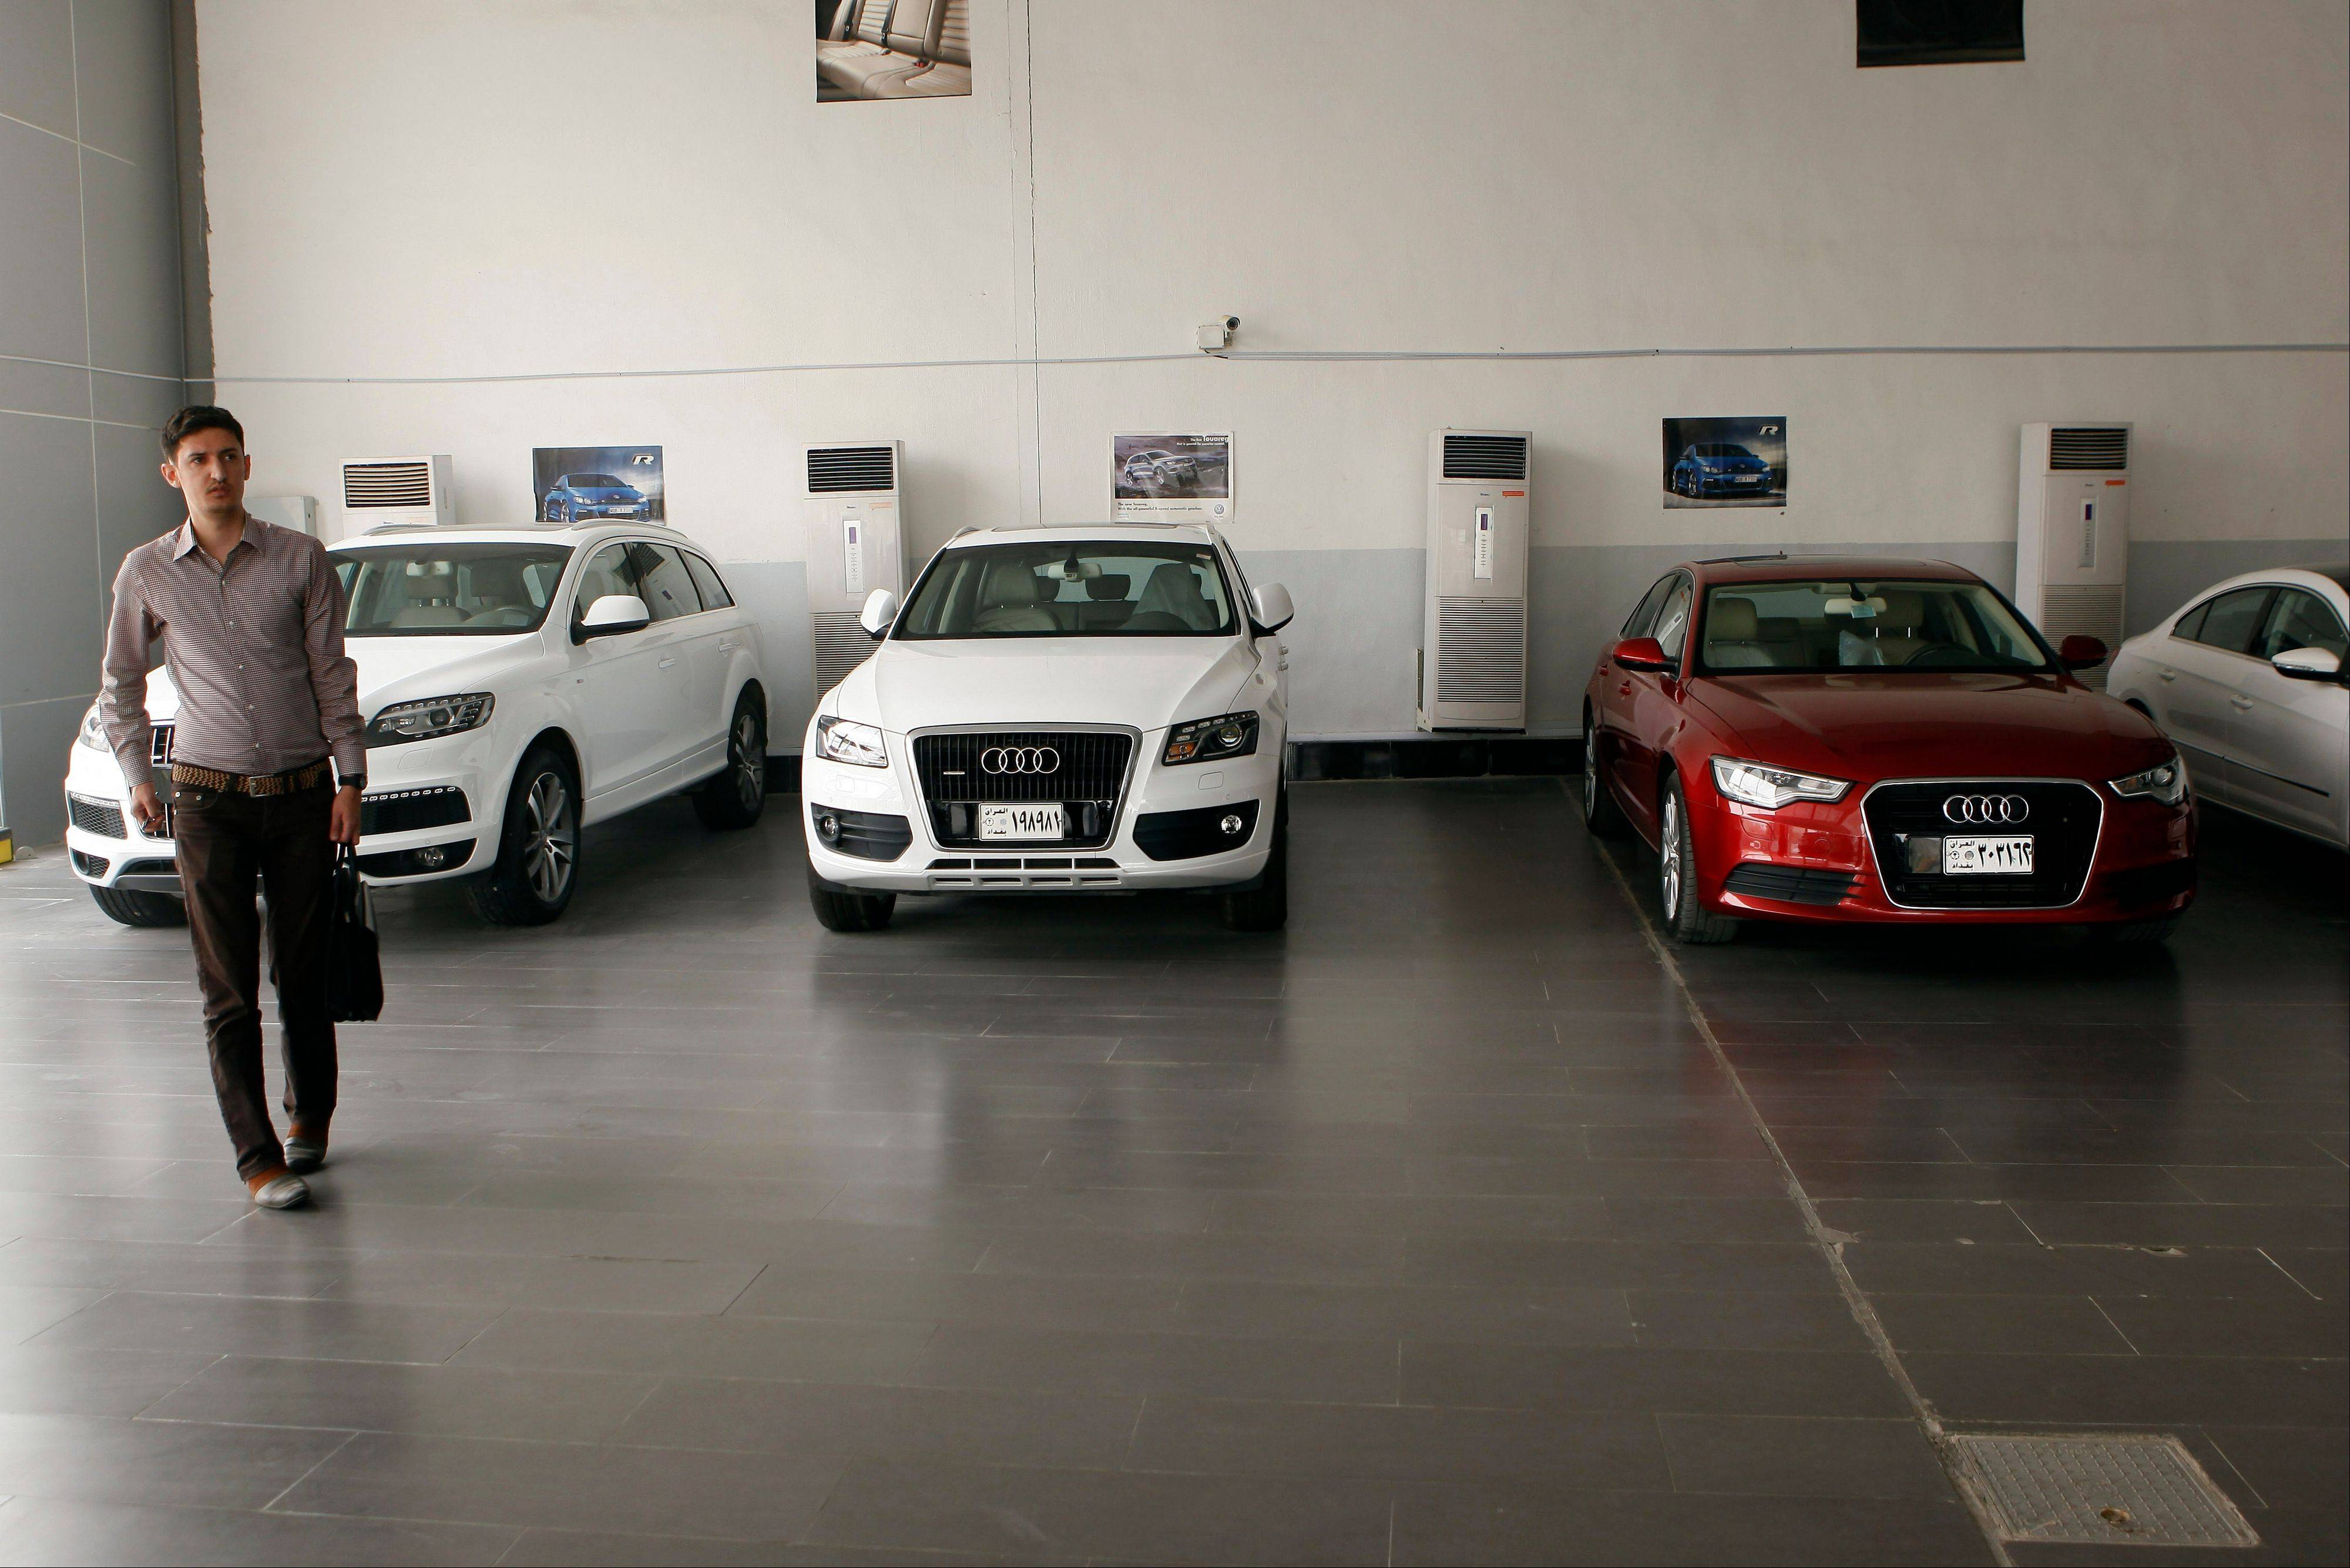 New Audi cars are seen at an automobile dealer in Baghdad, Iraq. A spike in violence is spilling over to Iraq's struggling economy, with an increasingly murky future making customers reluctant to spend and the re-emergence of sectarian threats forcing costly changes to the way business is done.